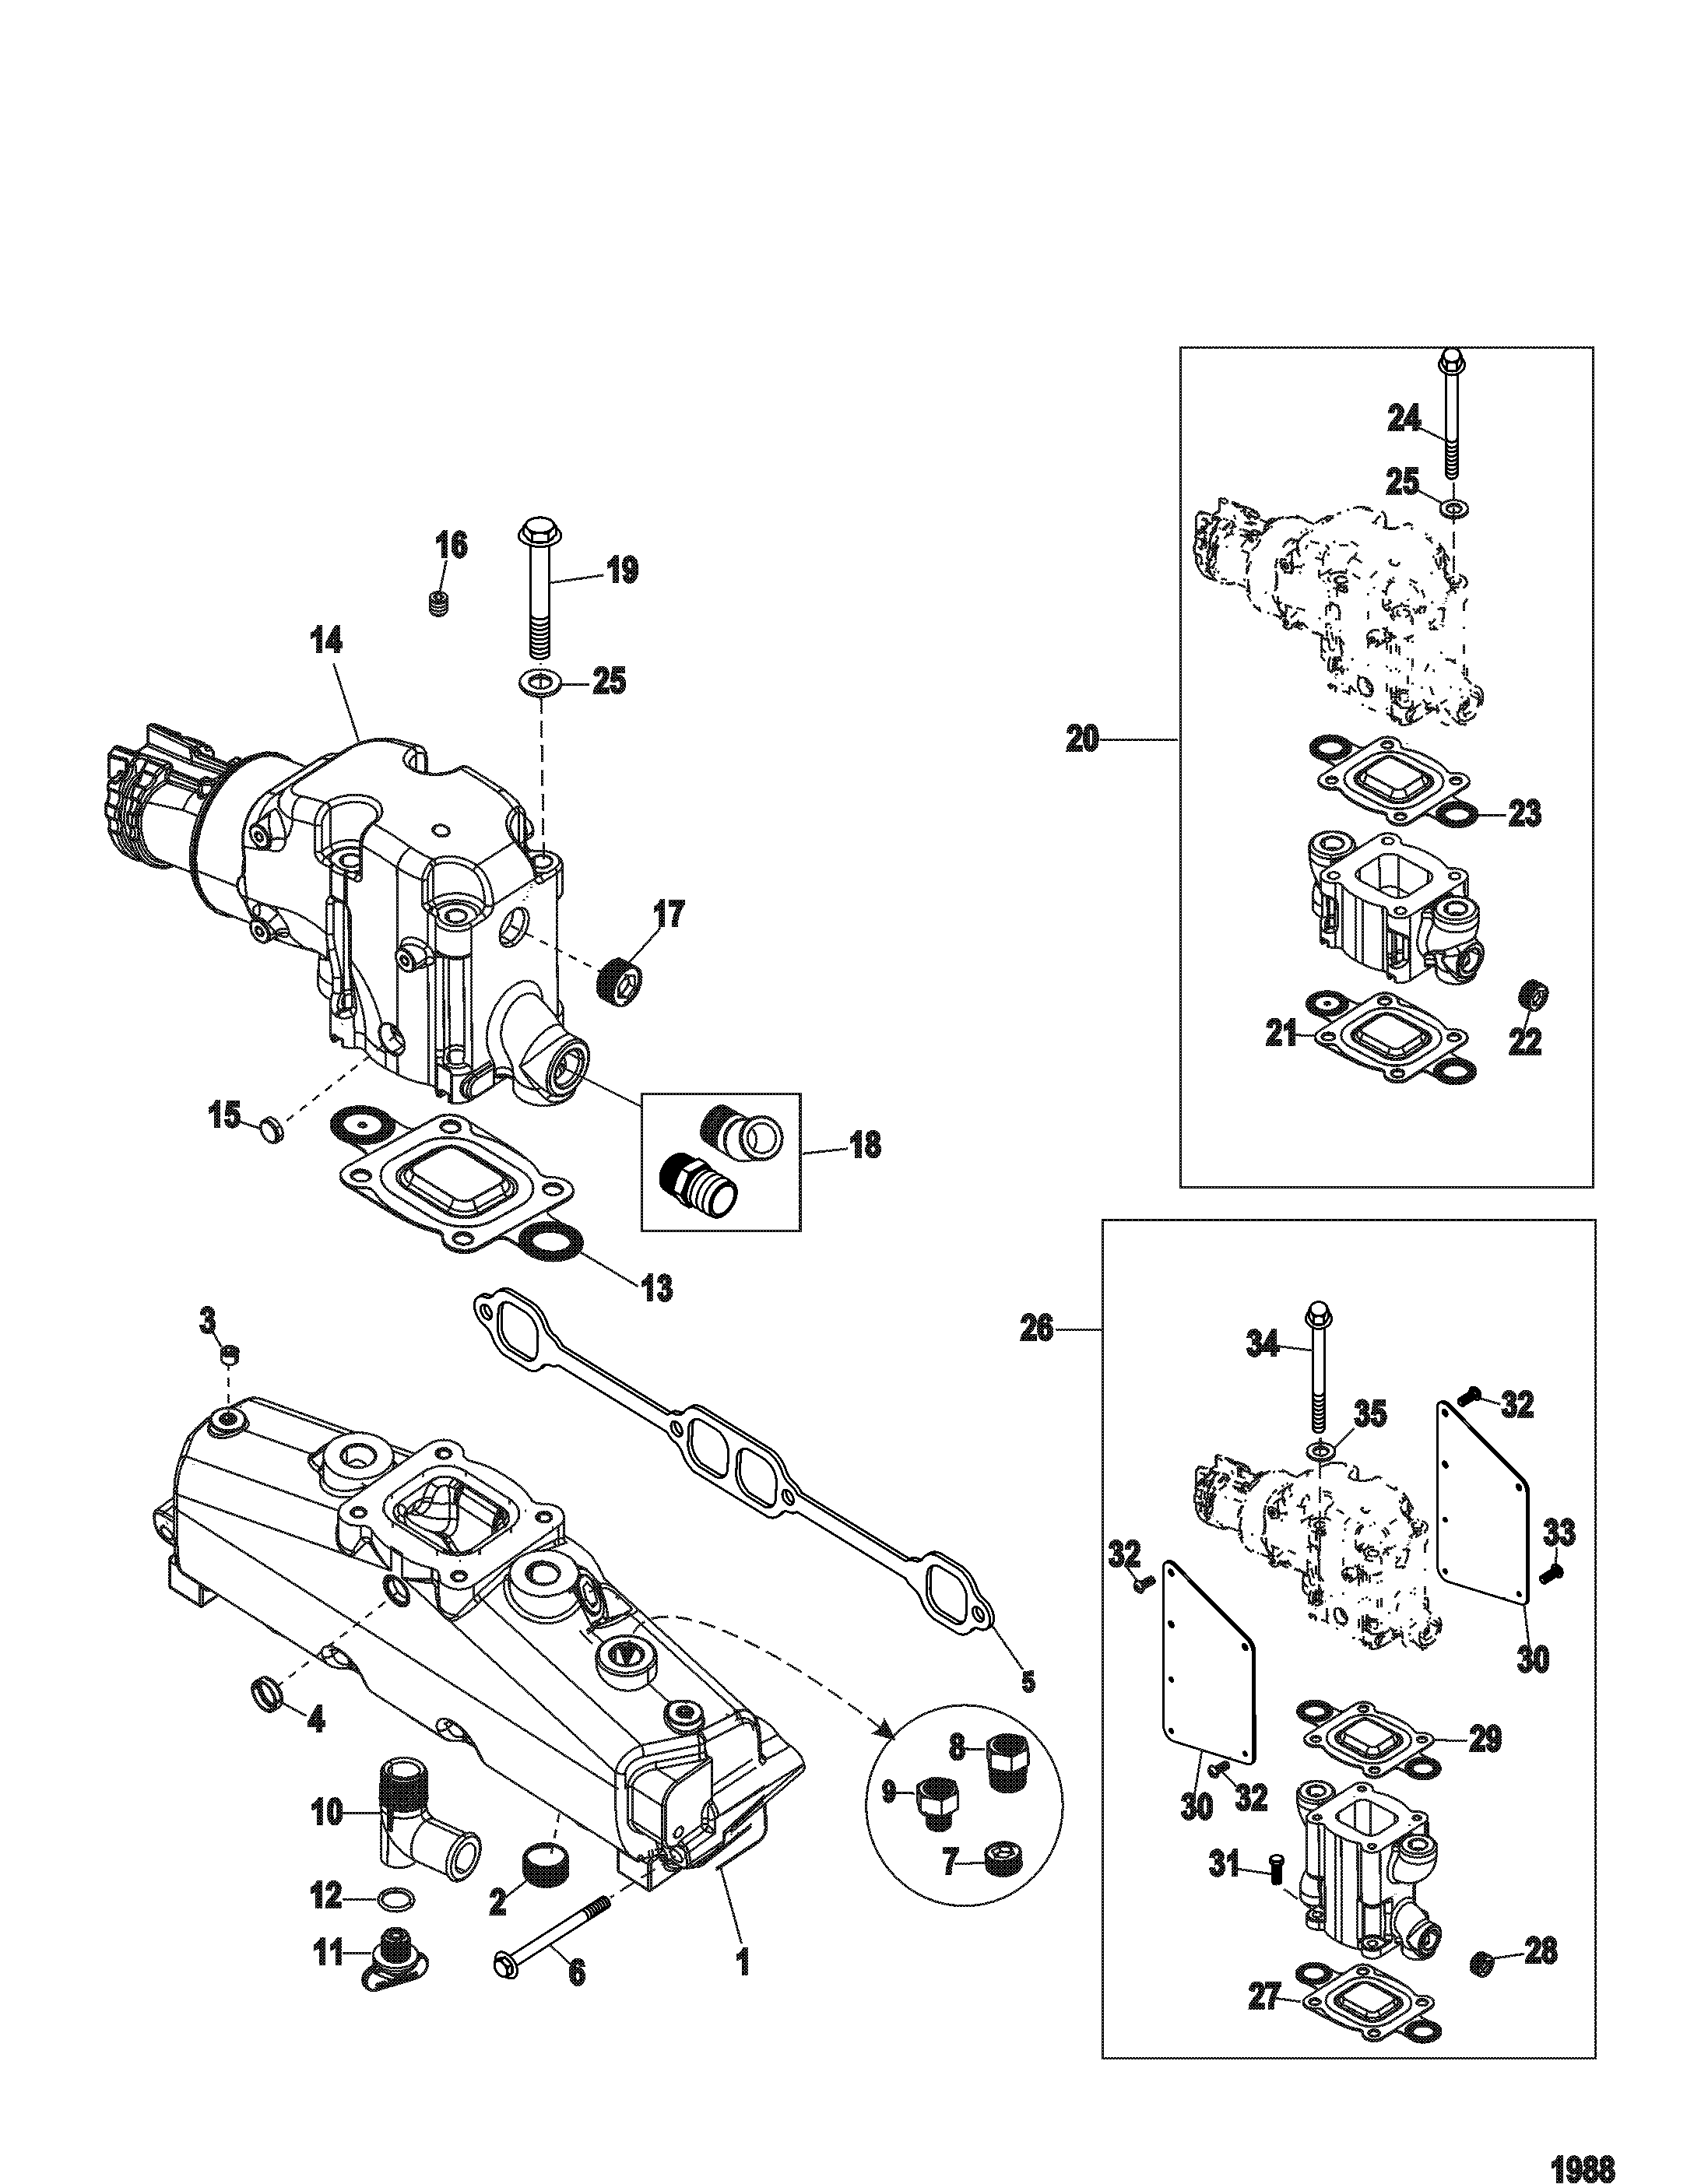 Exhaust Manifold And Elbow For Mercruiser 5 0l 5 7l